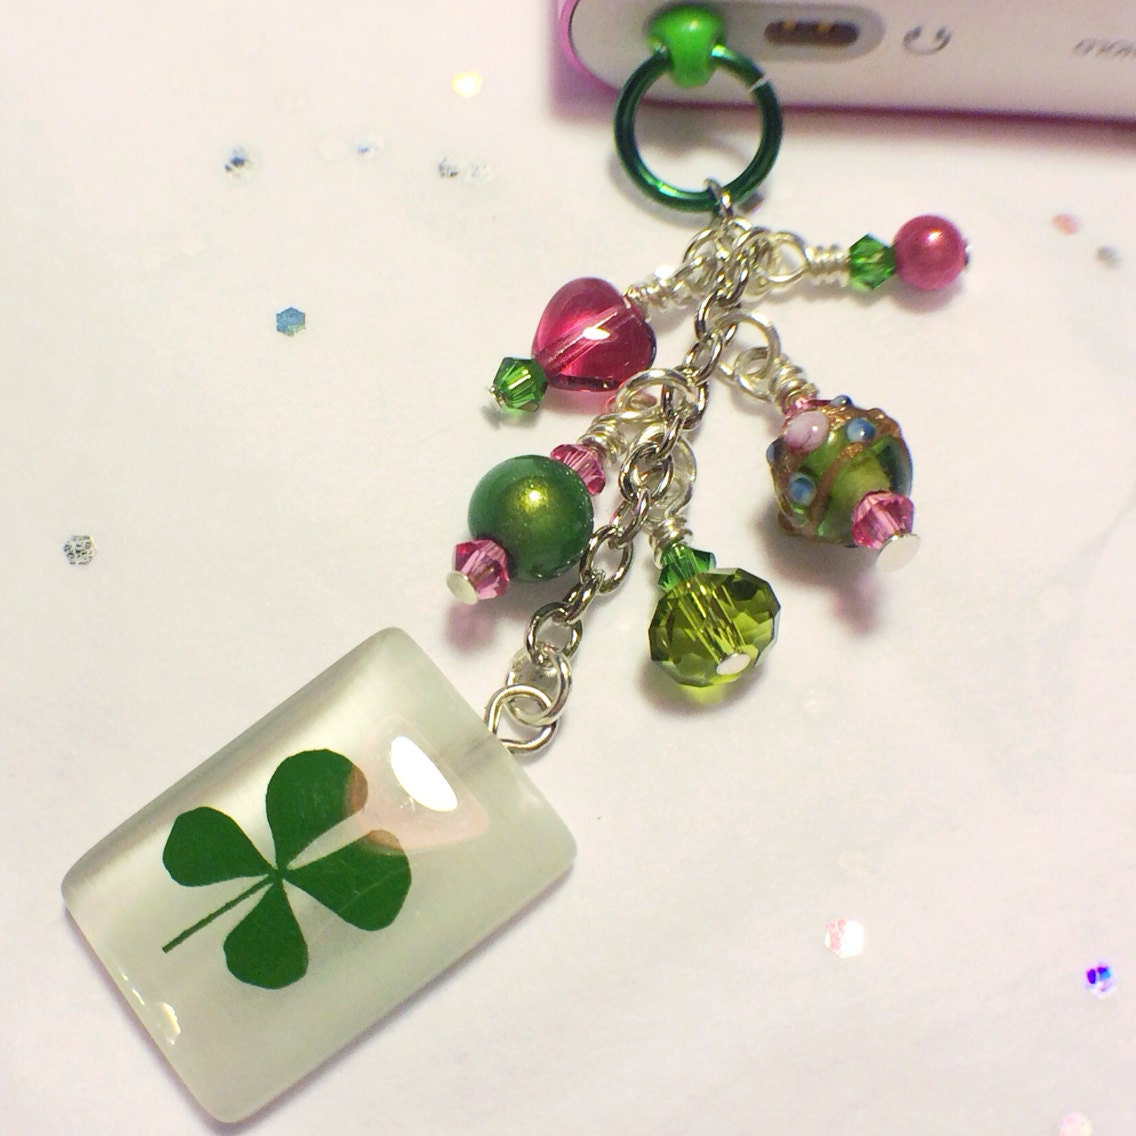 st s day lucky charm cell phone charm dust